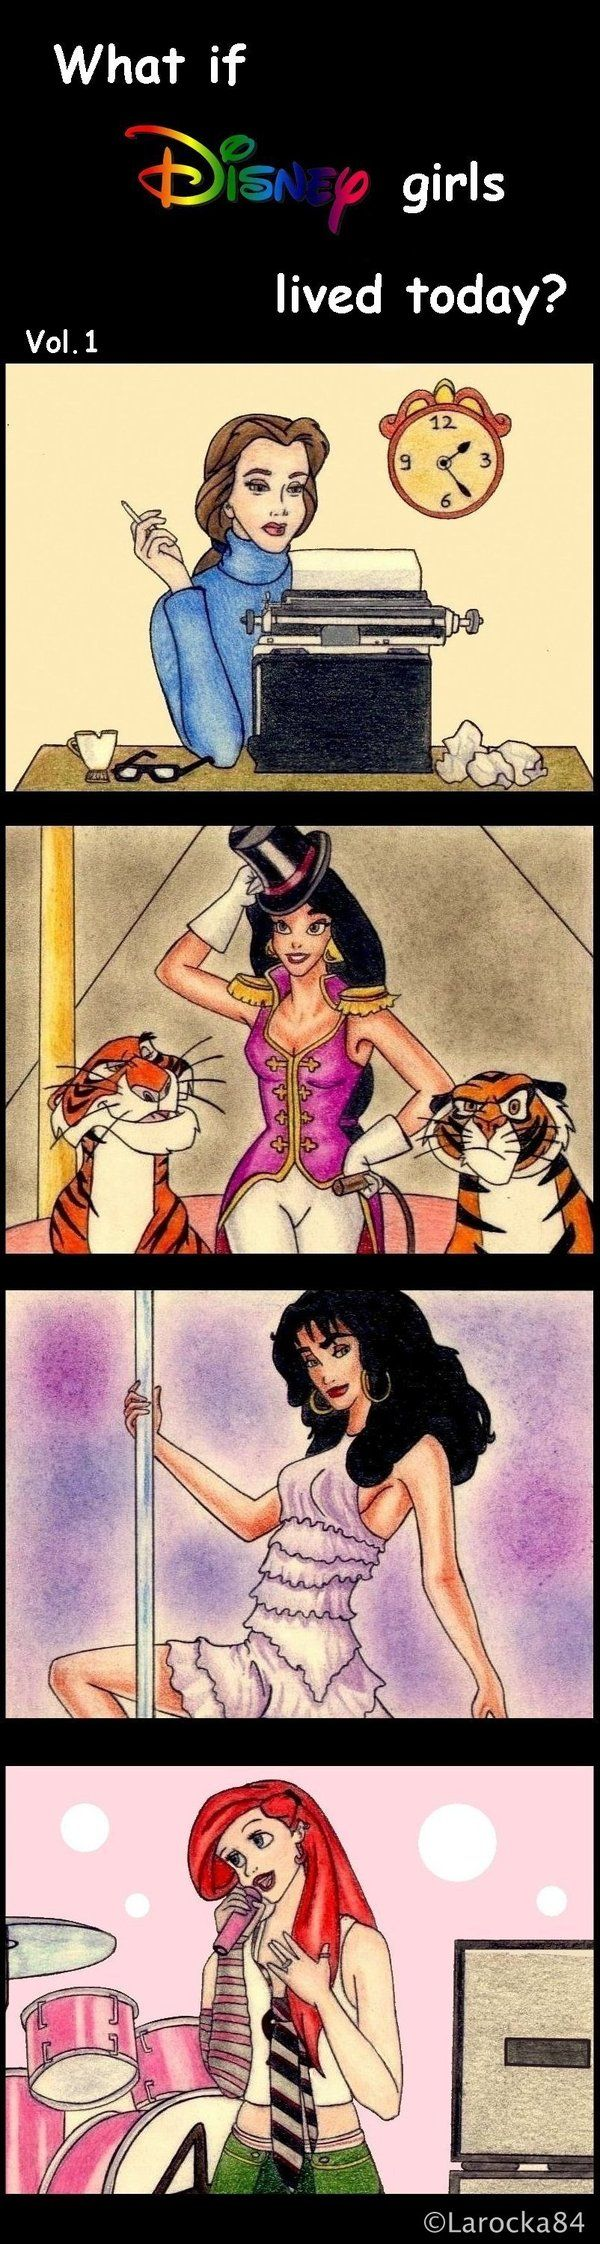 If Disney girls lived today 1